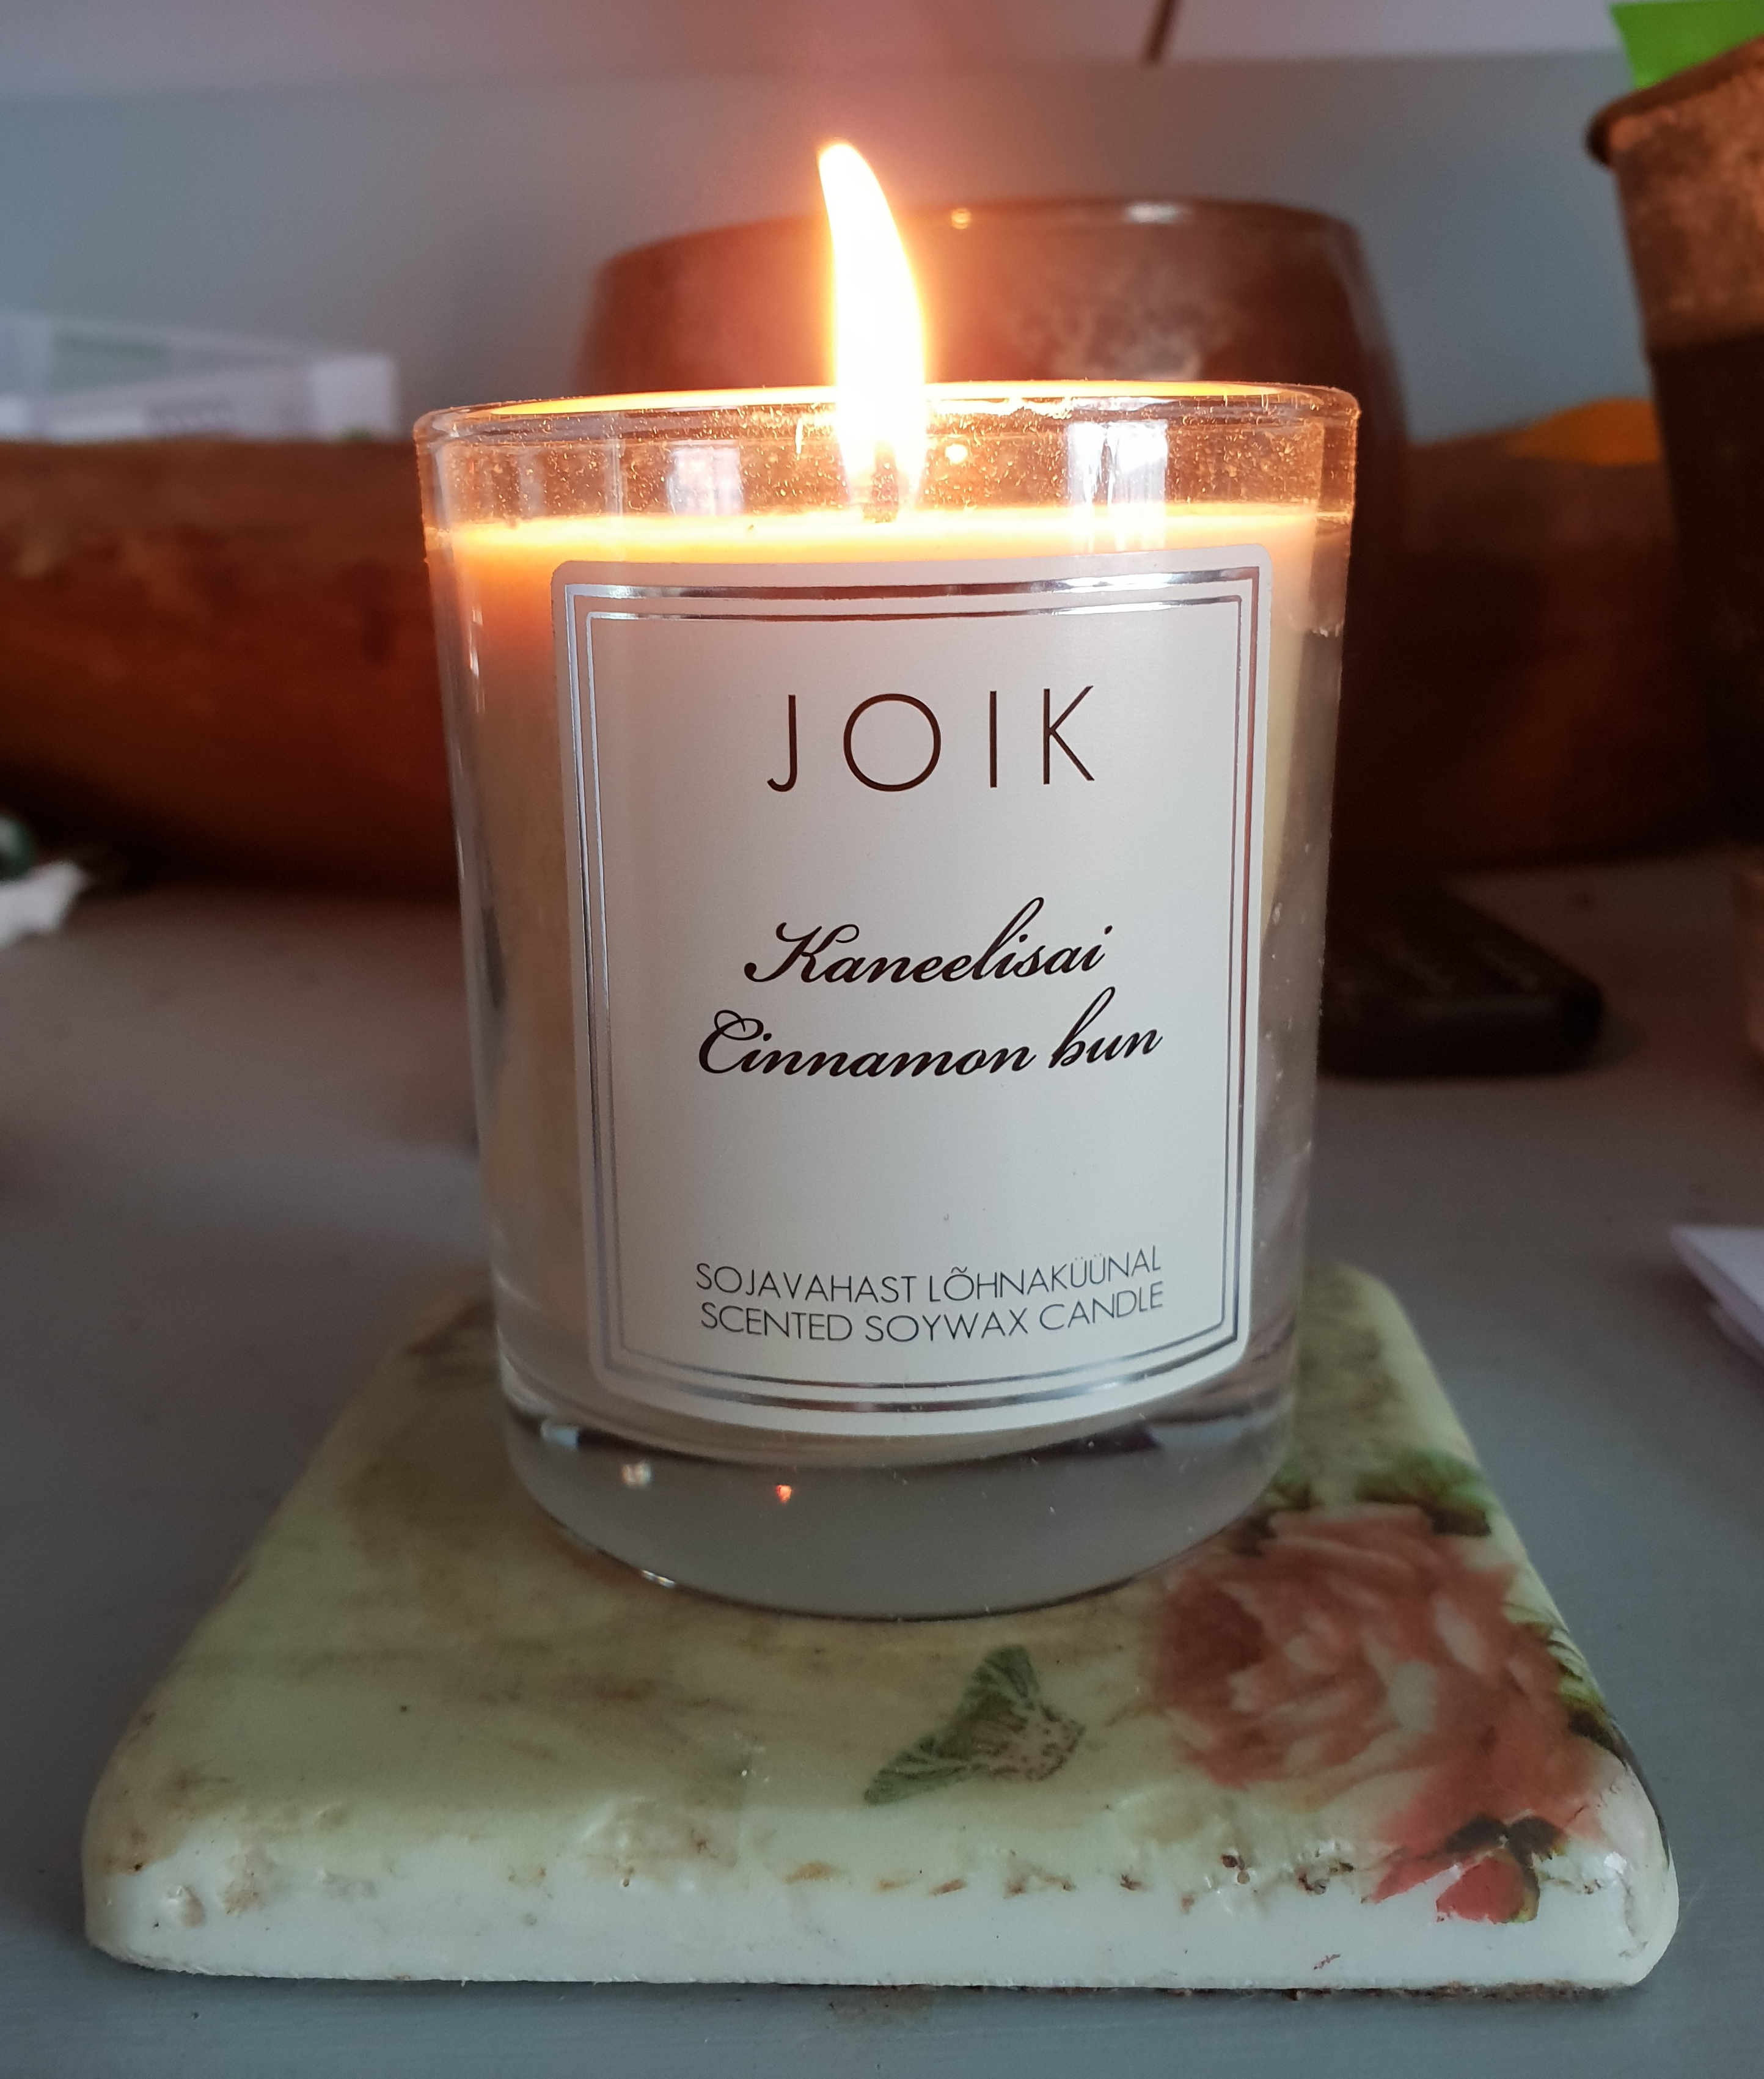 Cinnamon Bun Soy Wax Candle by Joik